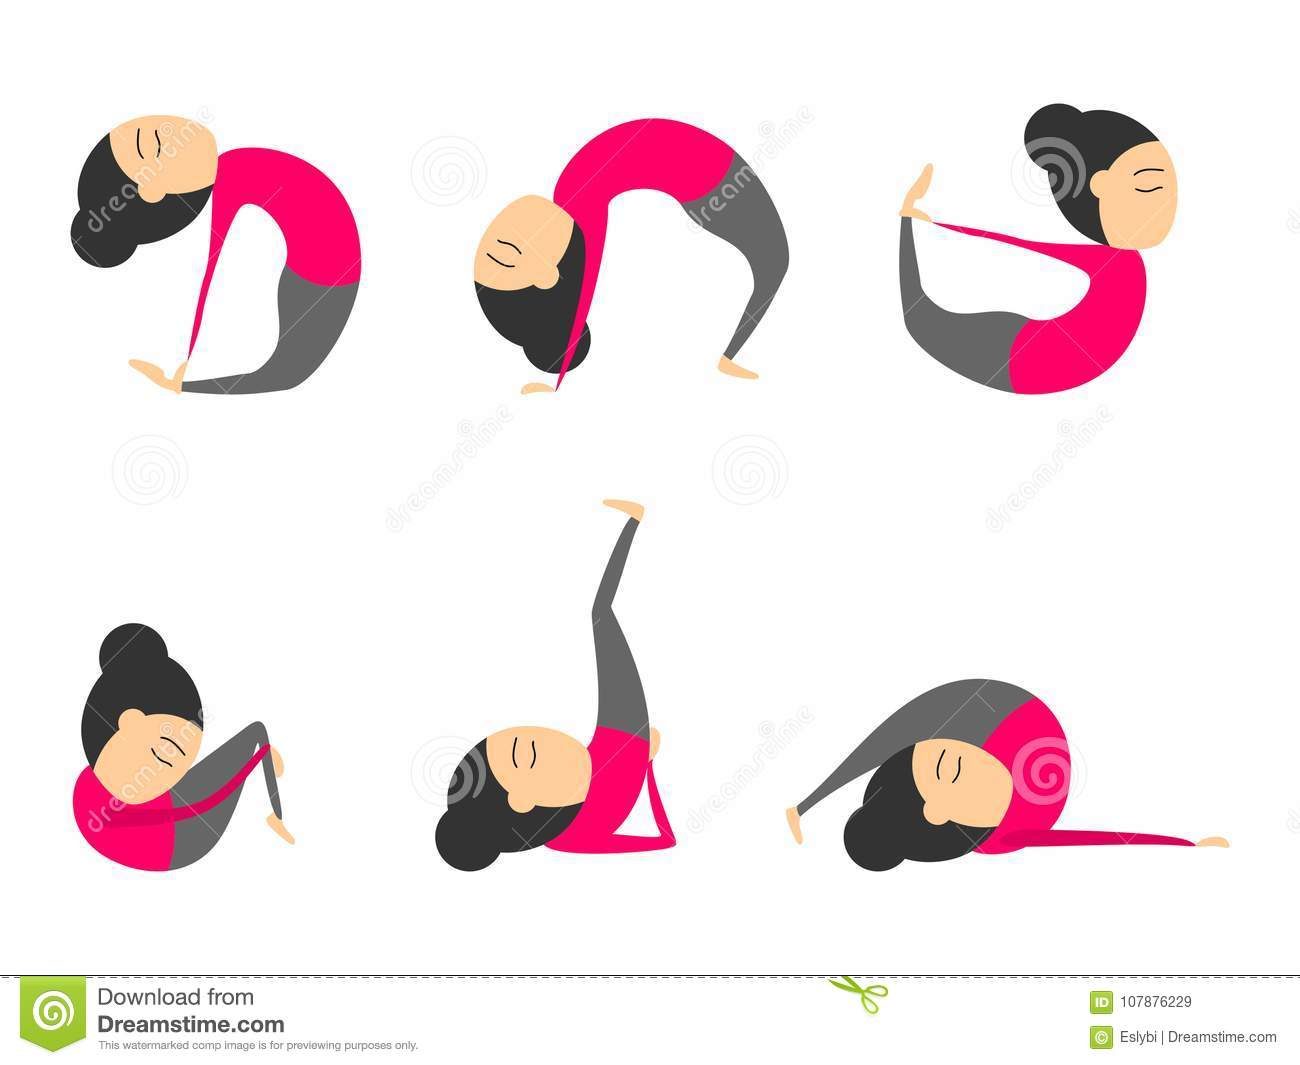 Download Vector Set Of Yoga Poses For Health And Flexibility Woman Exercises Class